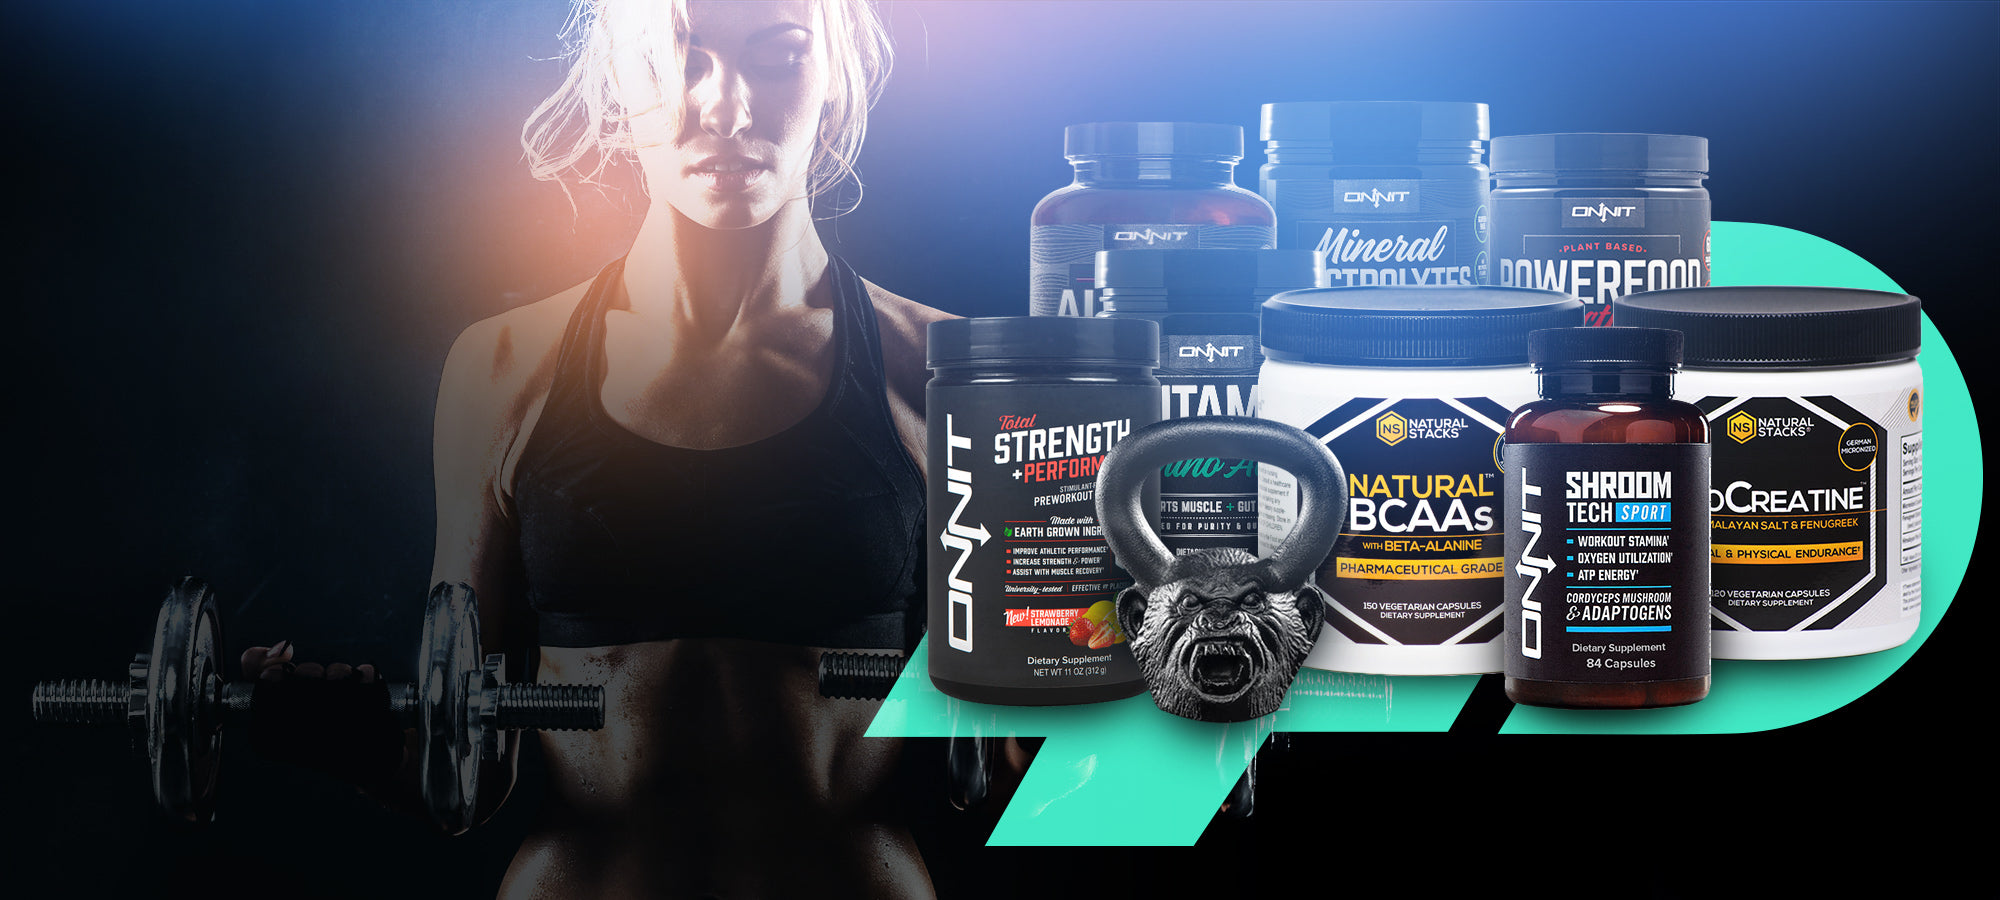 Powerful ie - Distributor for Onnit Labs and Natural Stacks